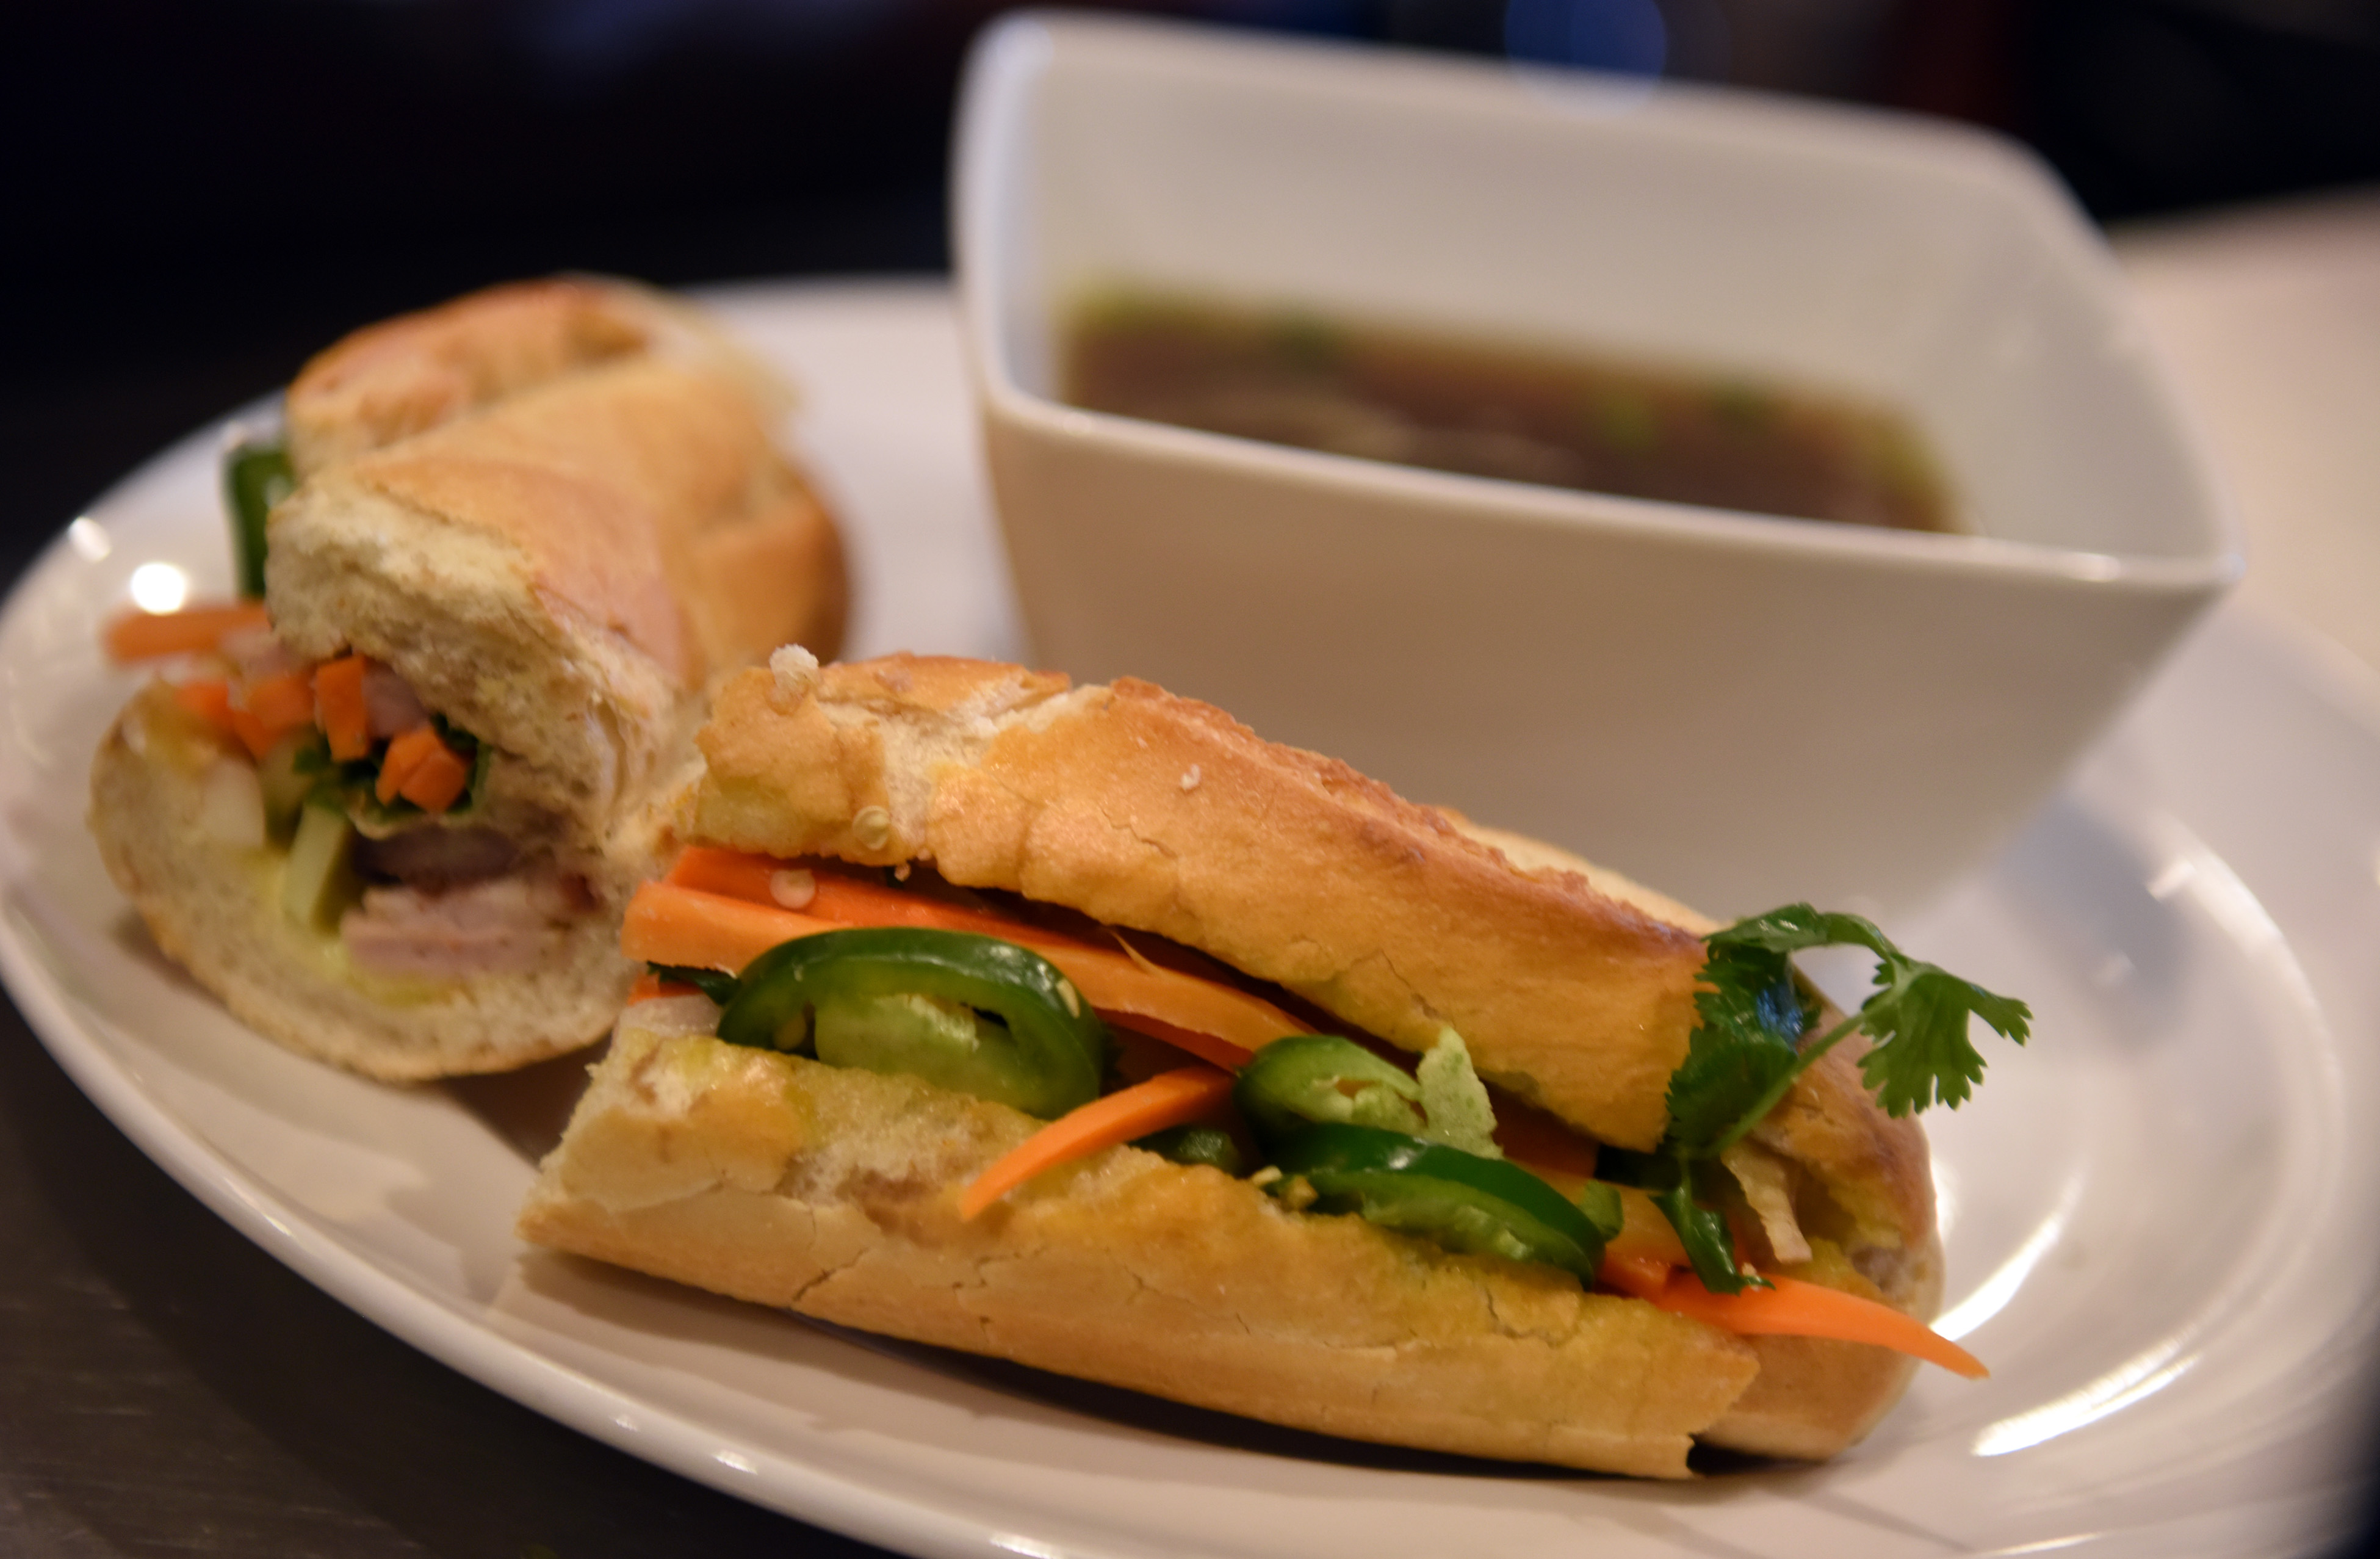 20170213smCookOff002-1 Executive chef Hoa Le prepared banh mi sandwich with pork and bone pho broth during Monday's cook off.